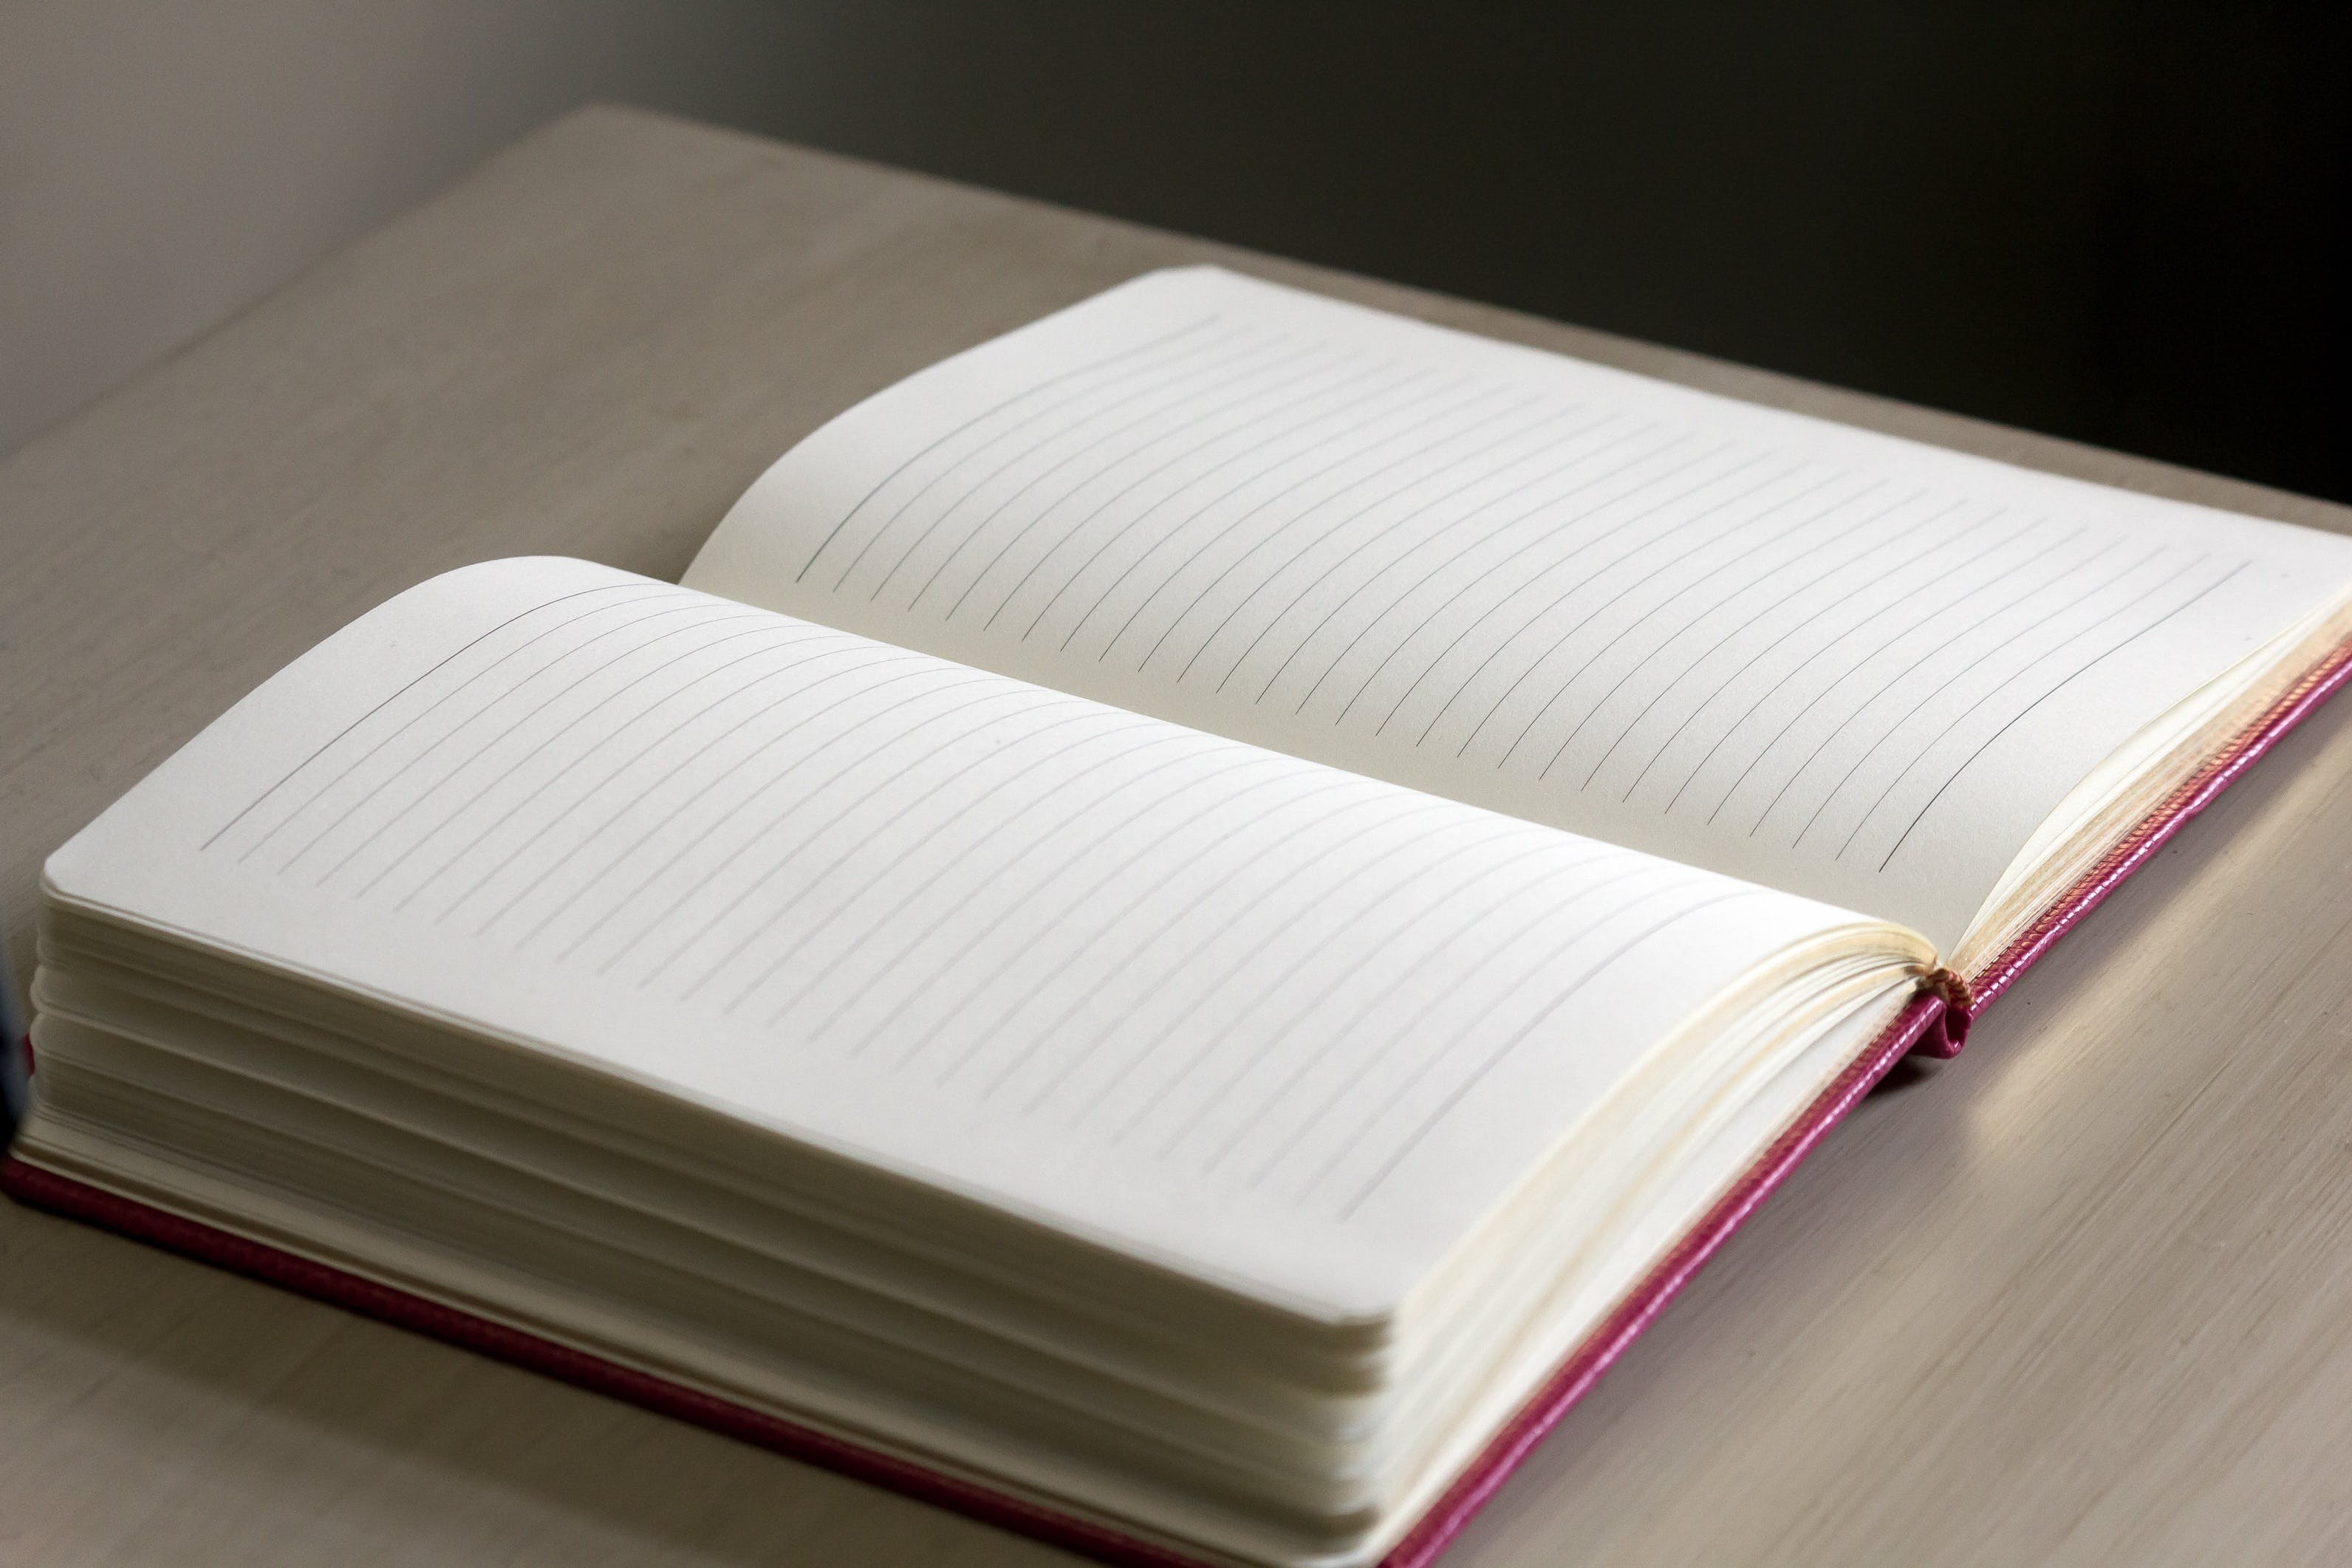 White Lined Notebook on Gray Table